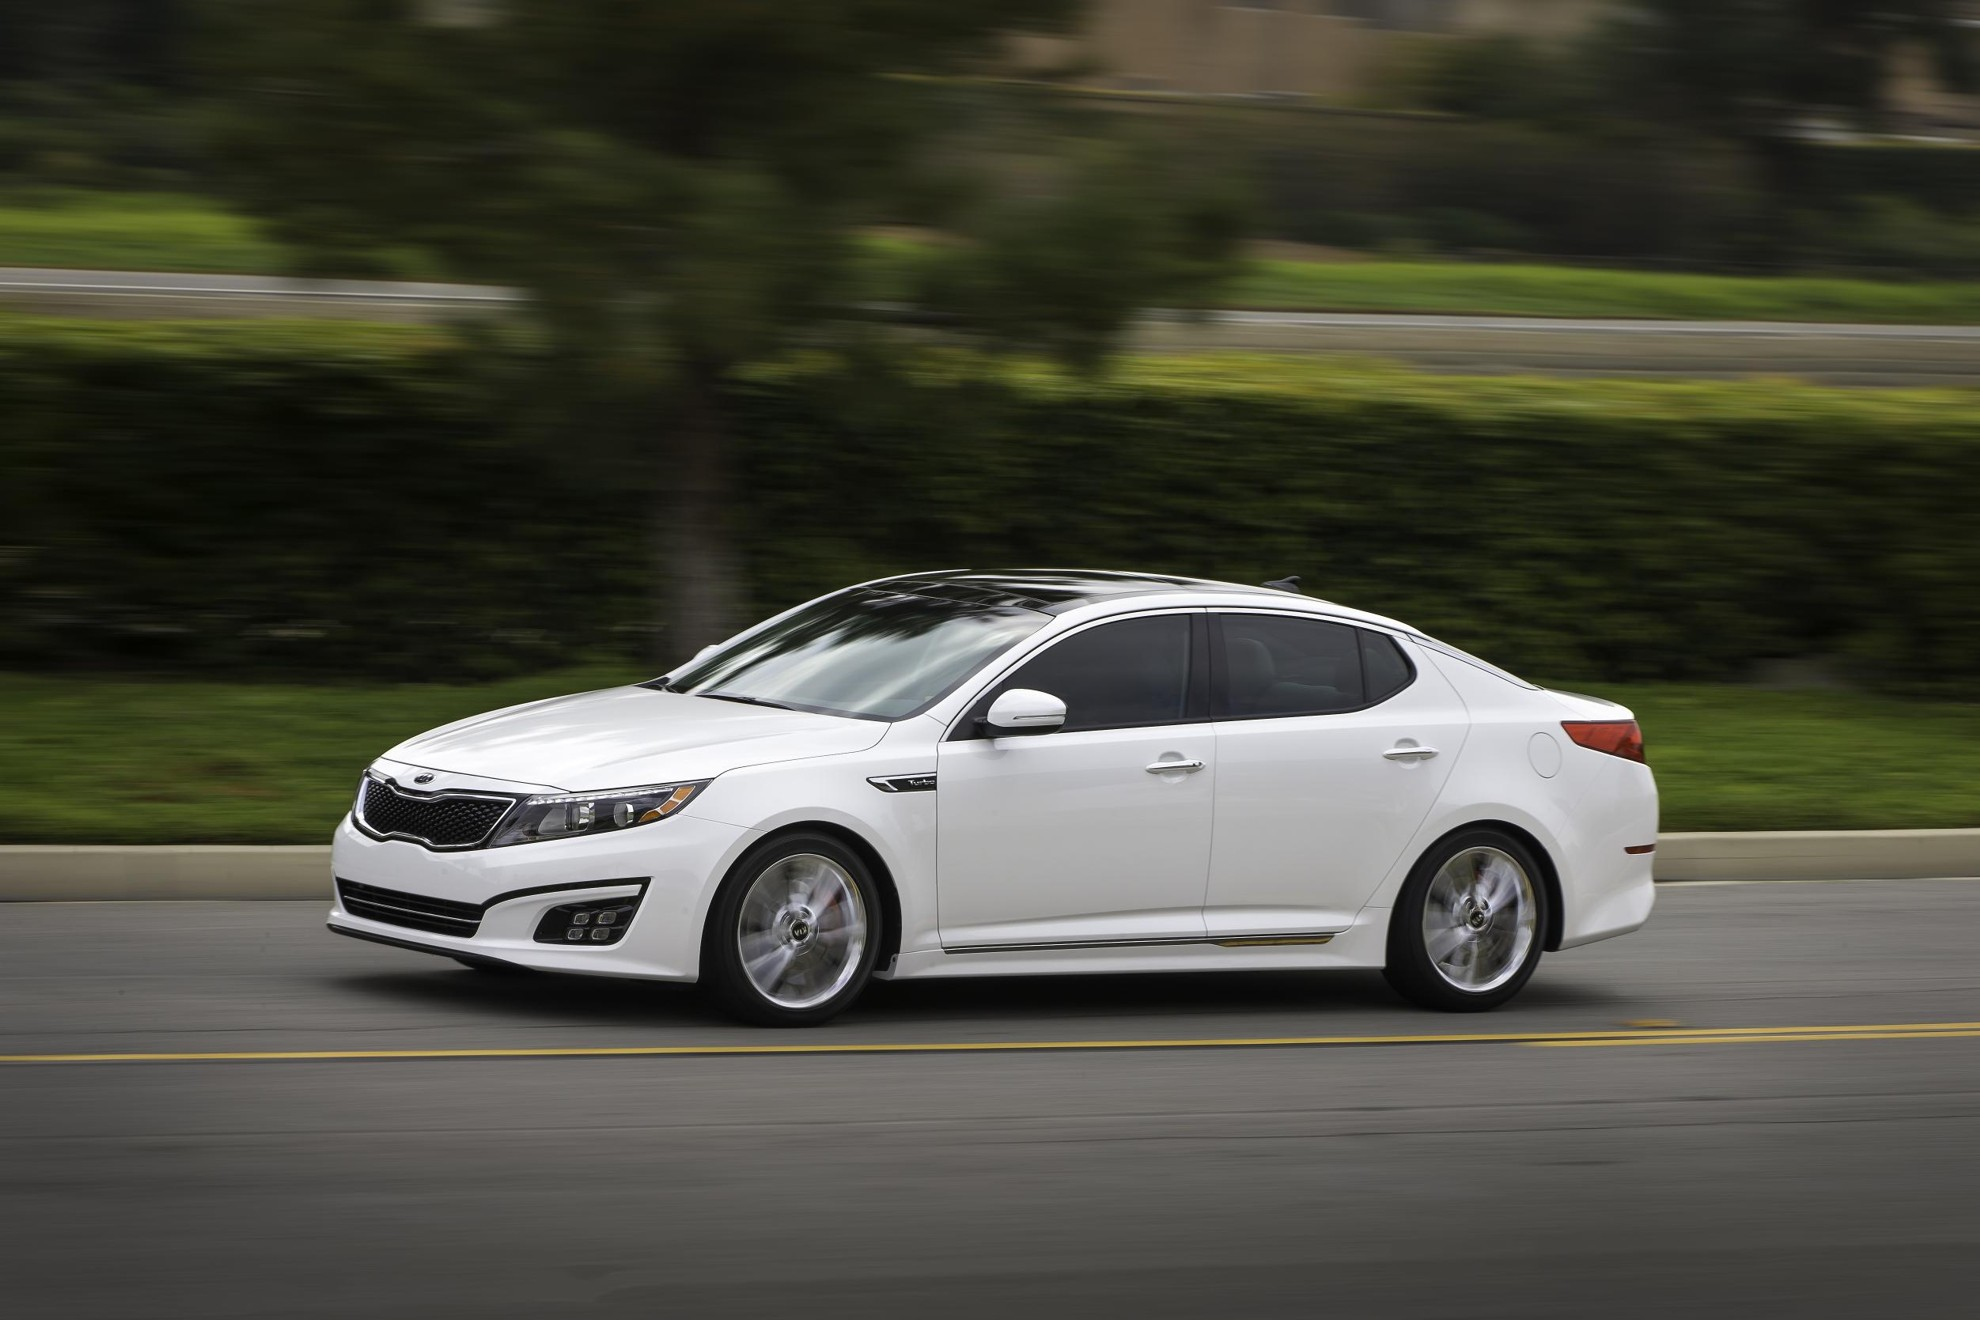 optima kia review test hybrid chris chase drive expert